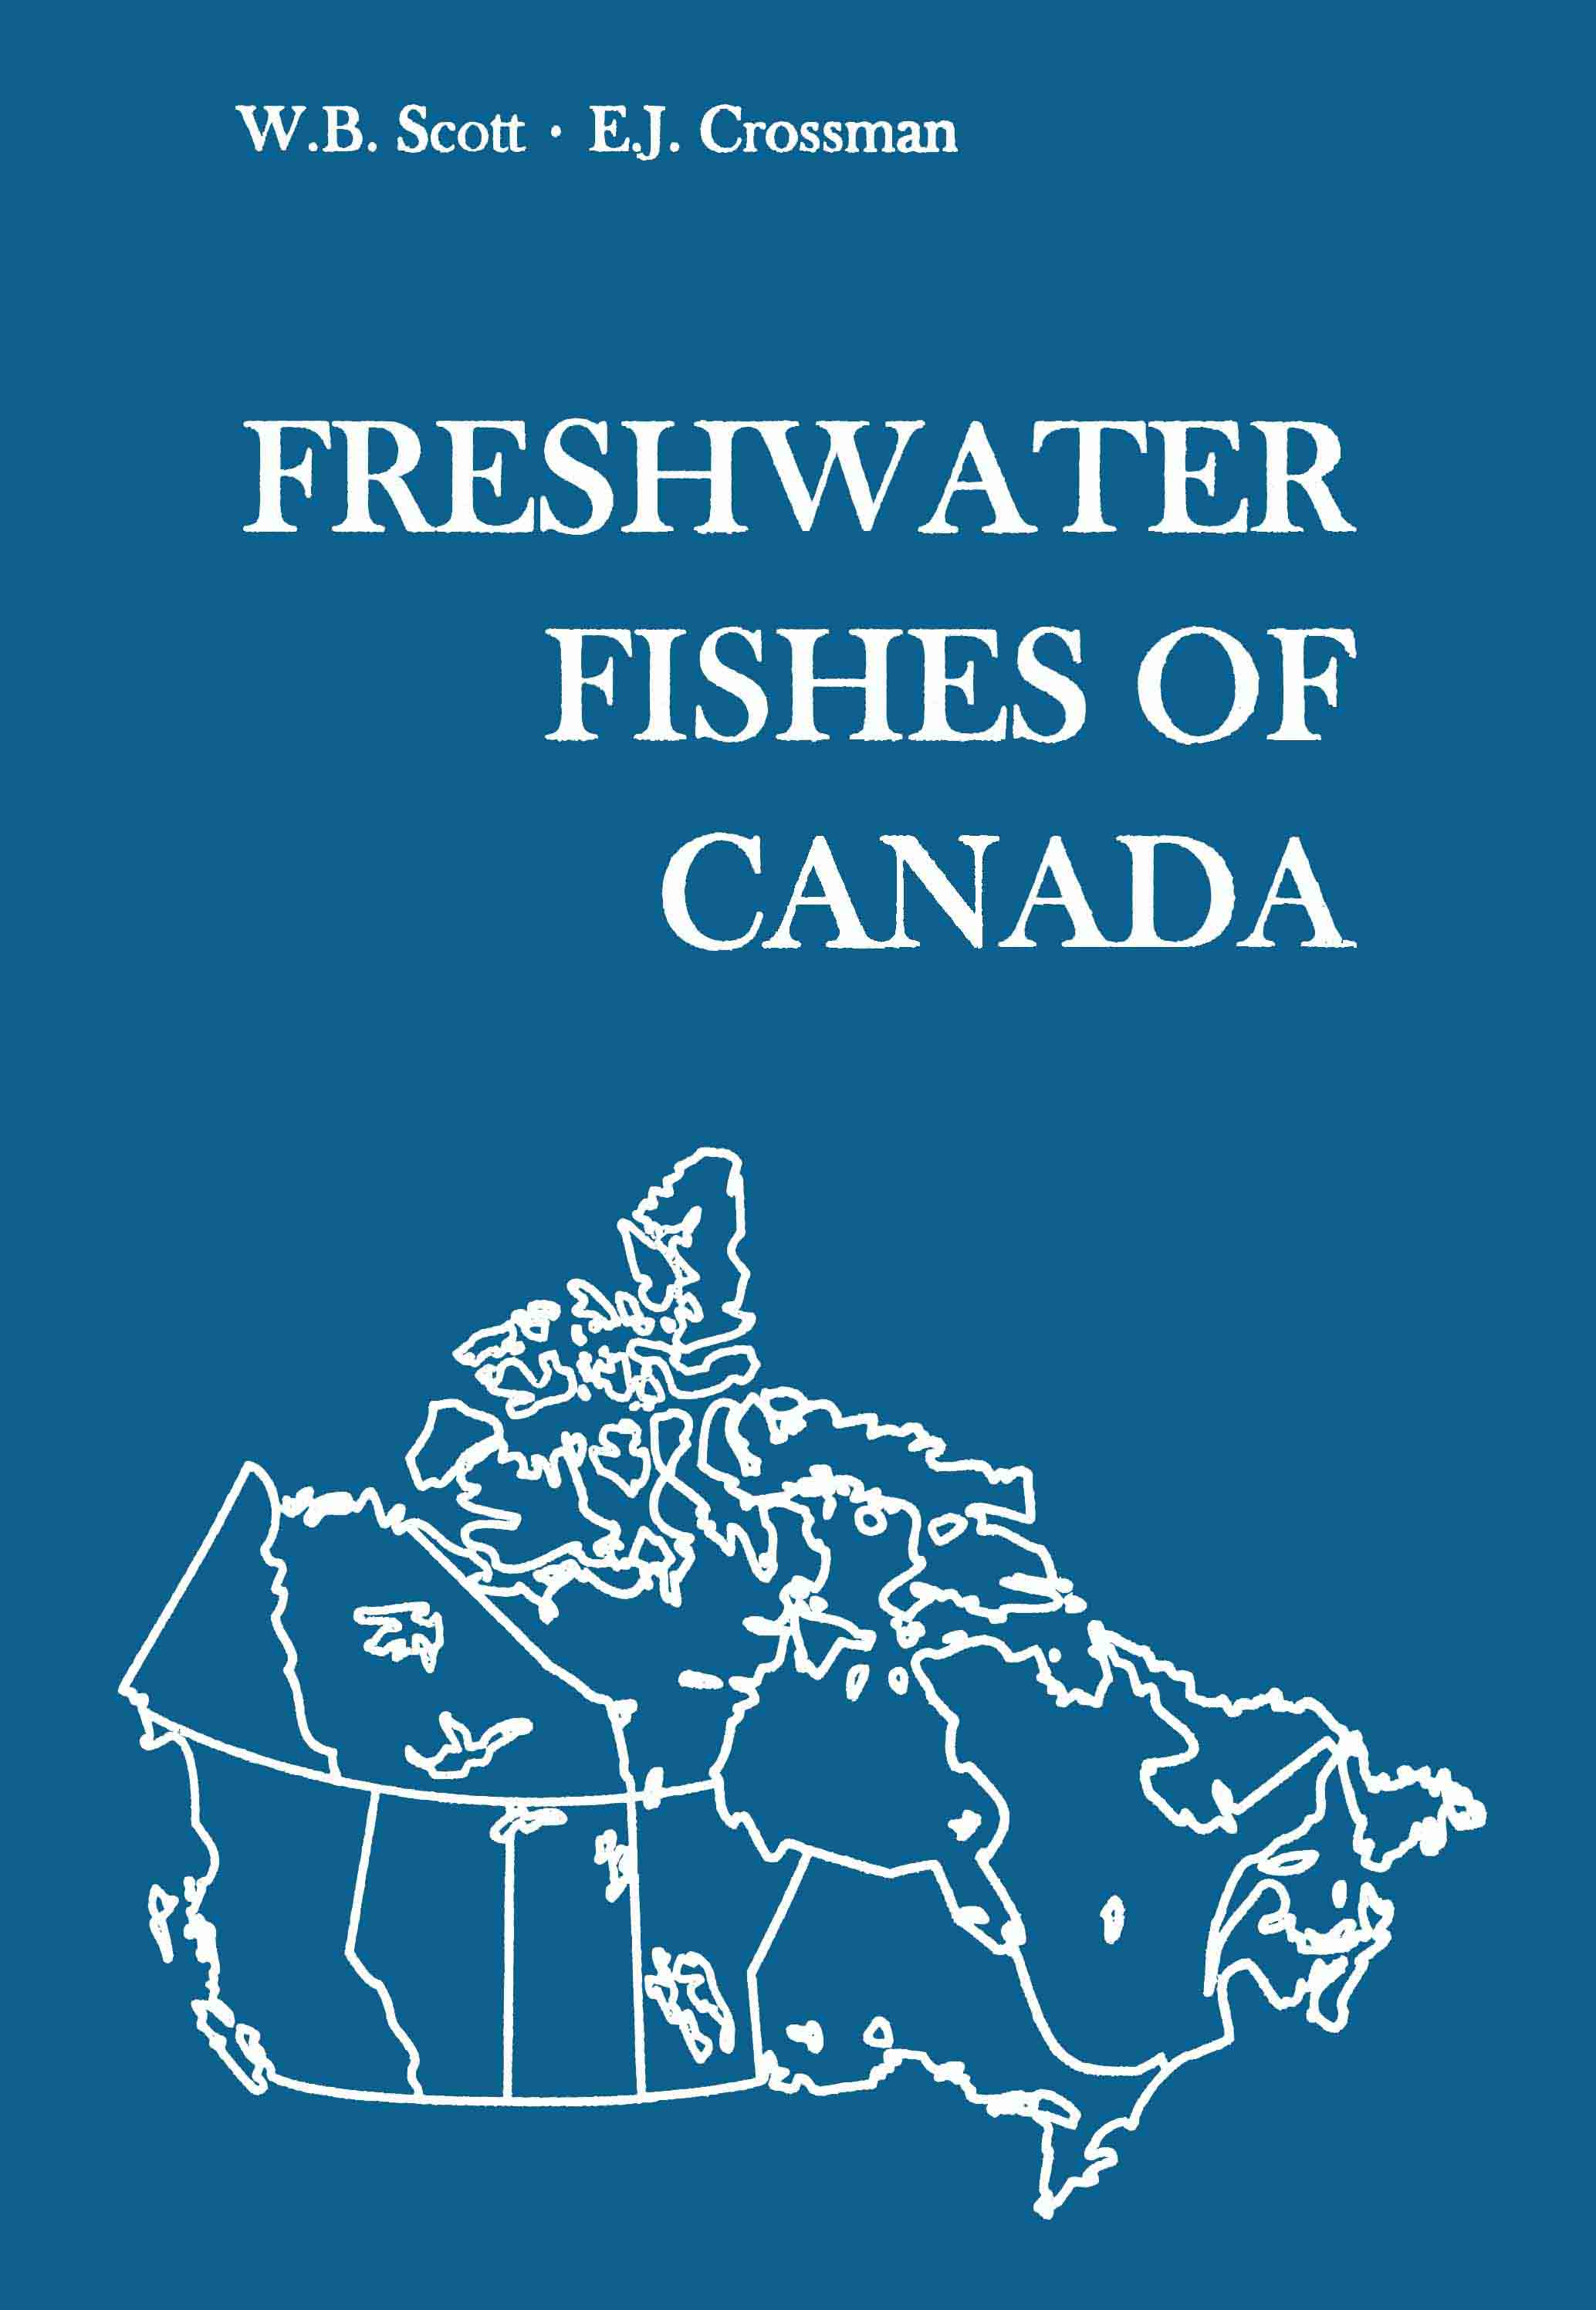 Freshwater fish online canada - Freshwater Fishes Of Canada